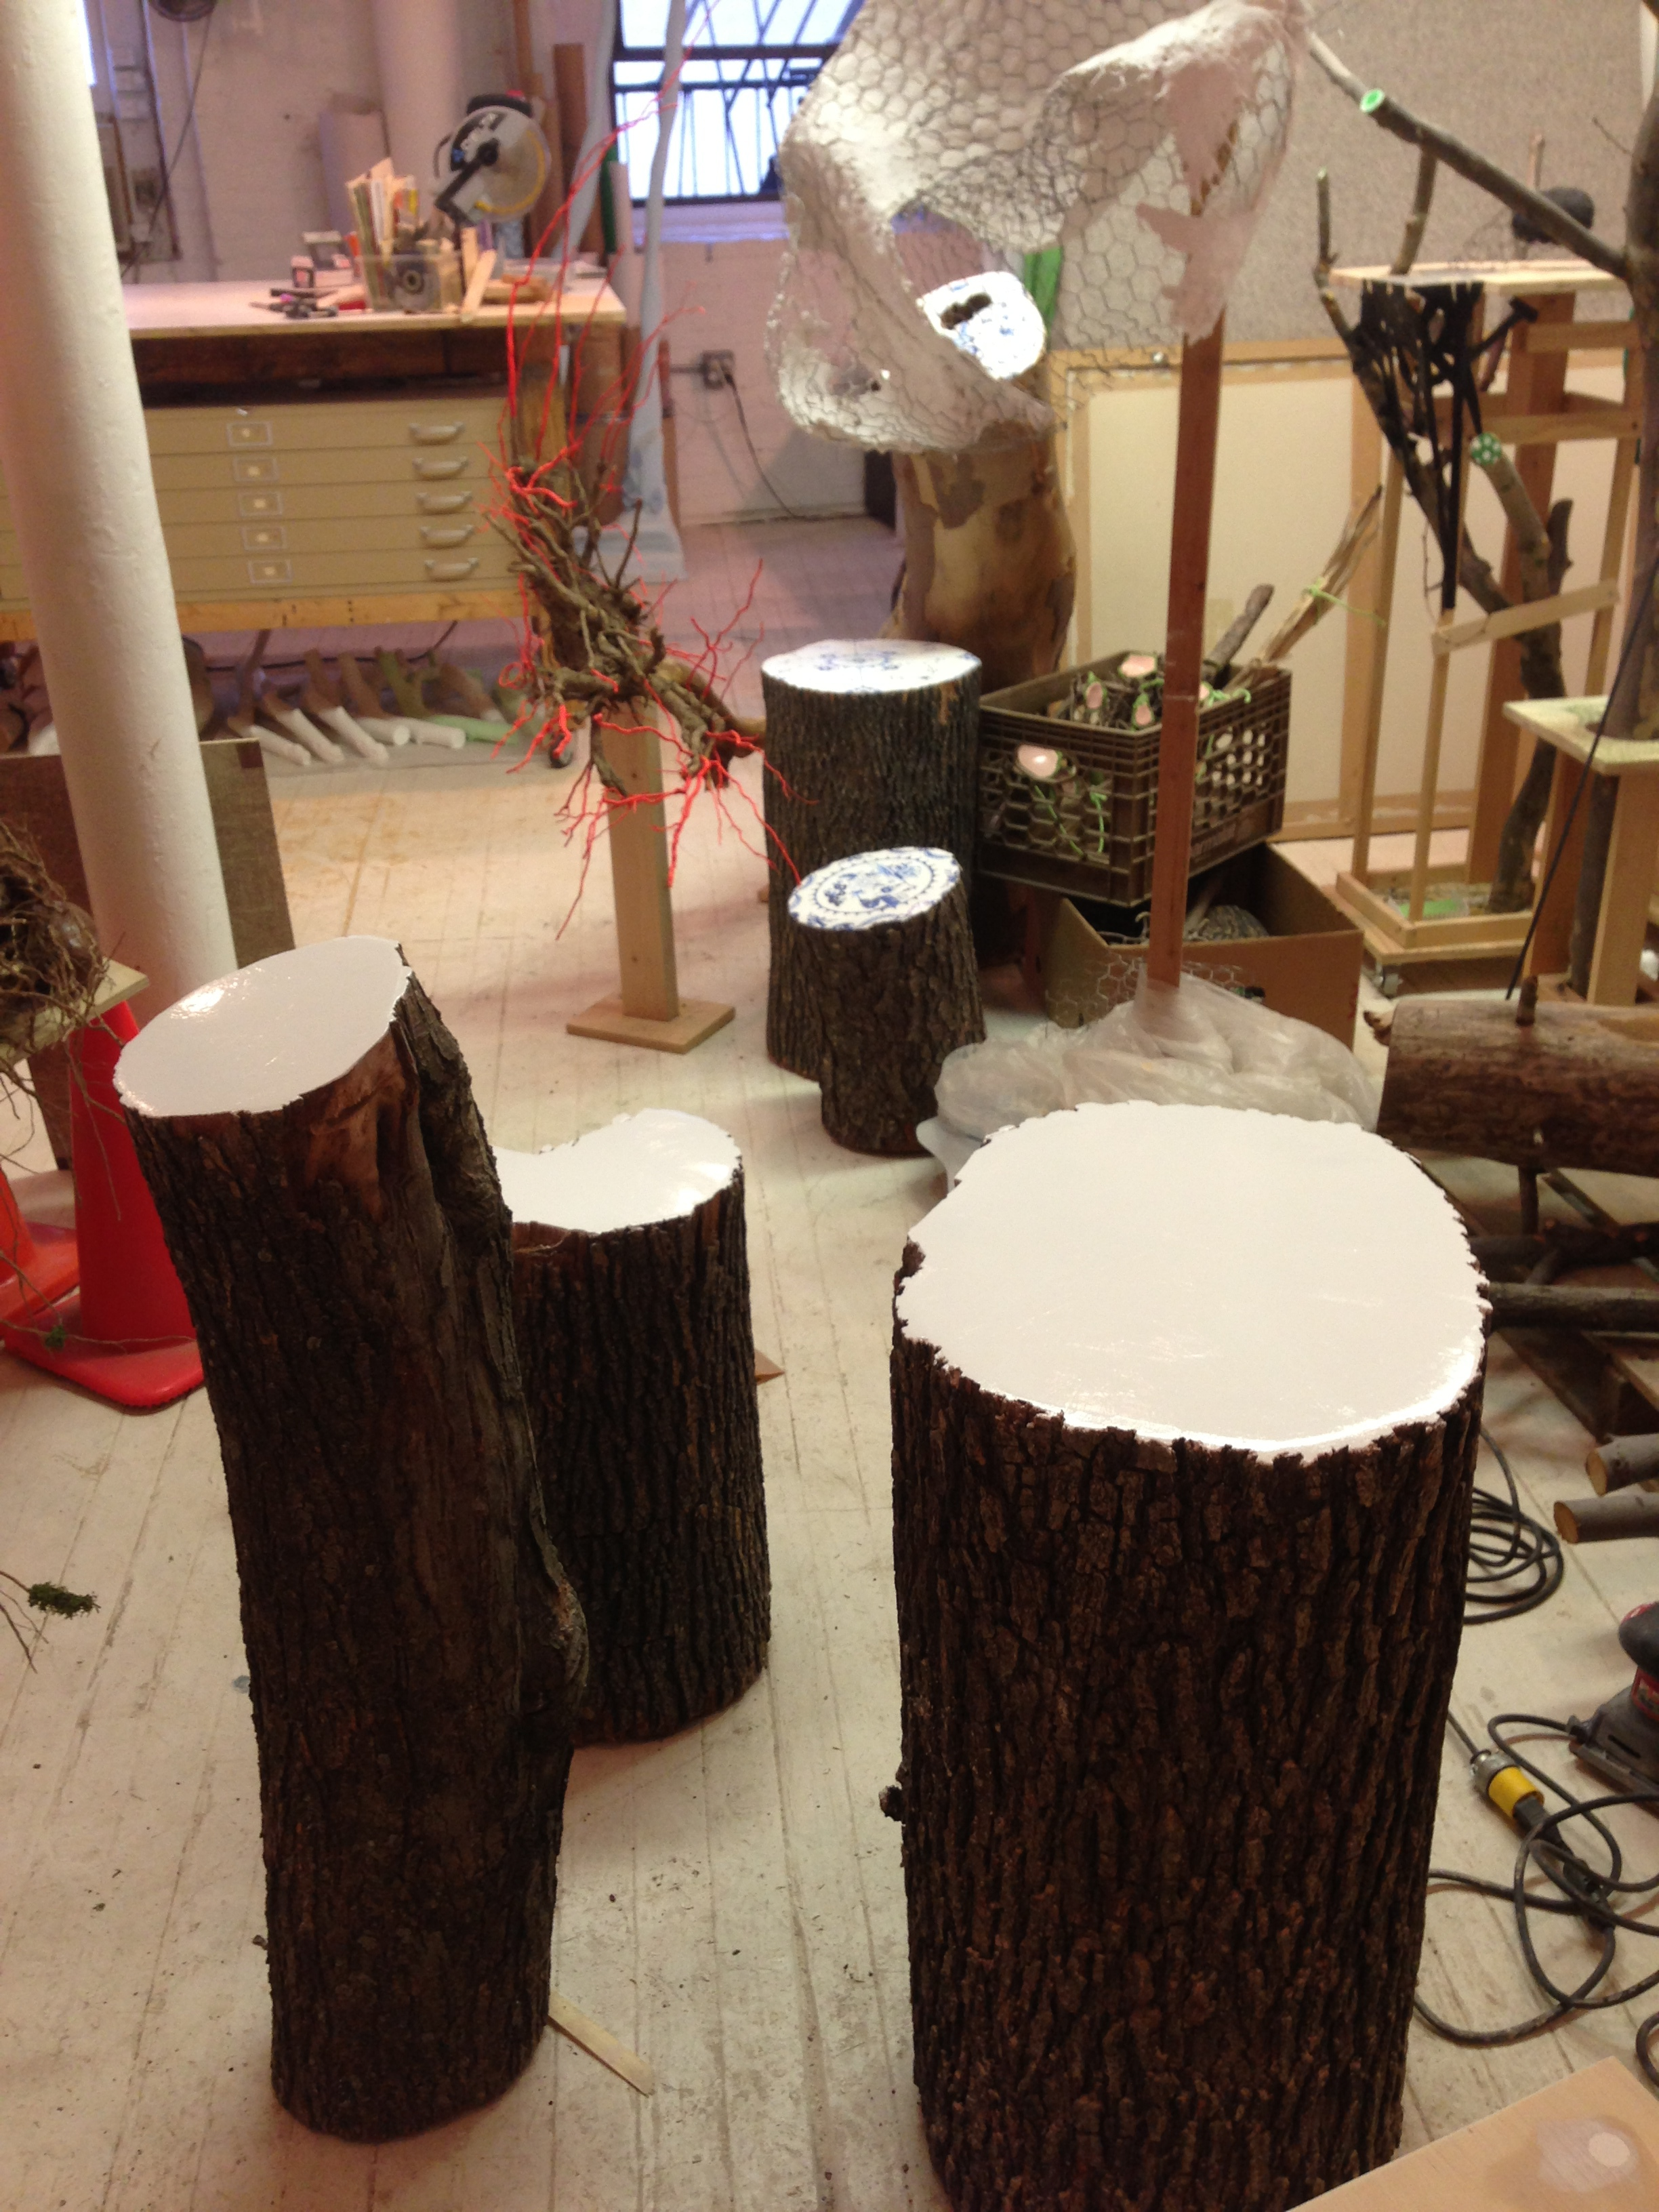 Stumps coated with white acrylic paint